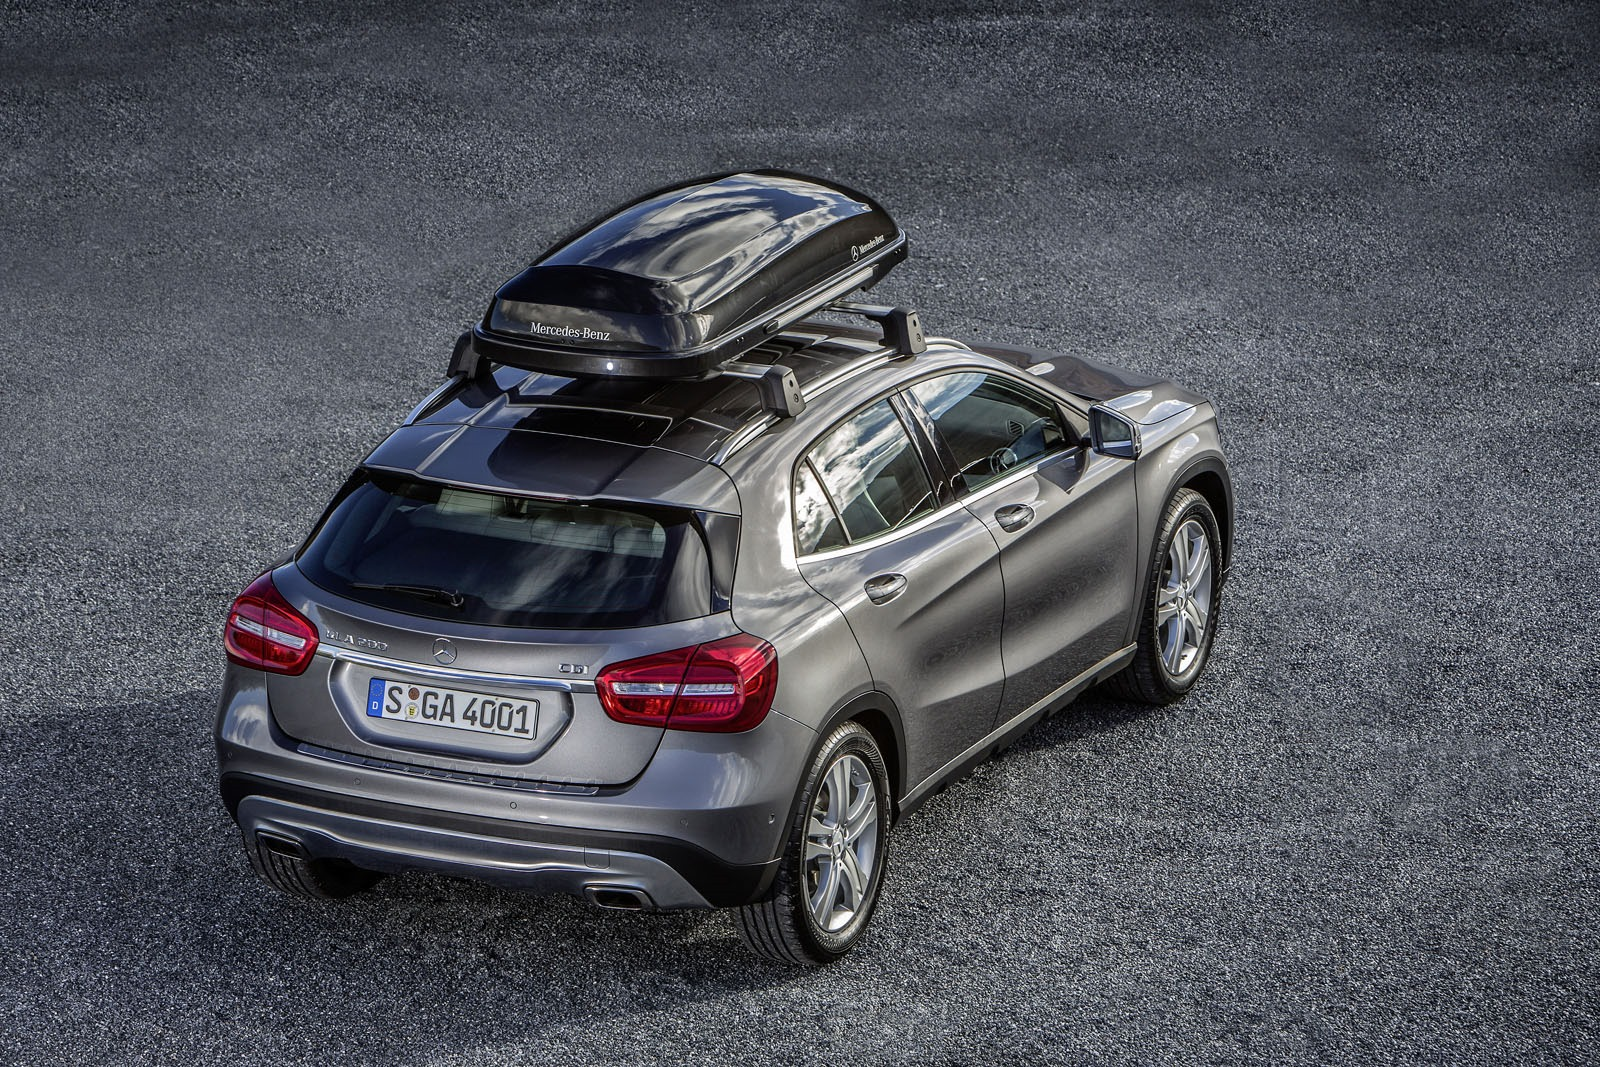 Mercedes benz releases genuine accessories for the gla for Mercedes benz accessories